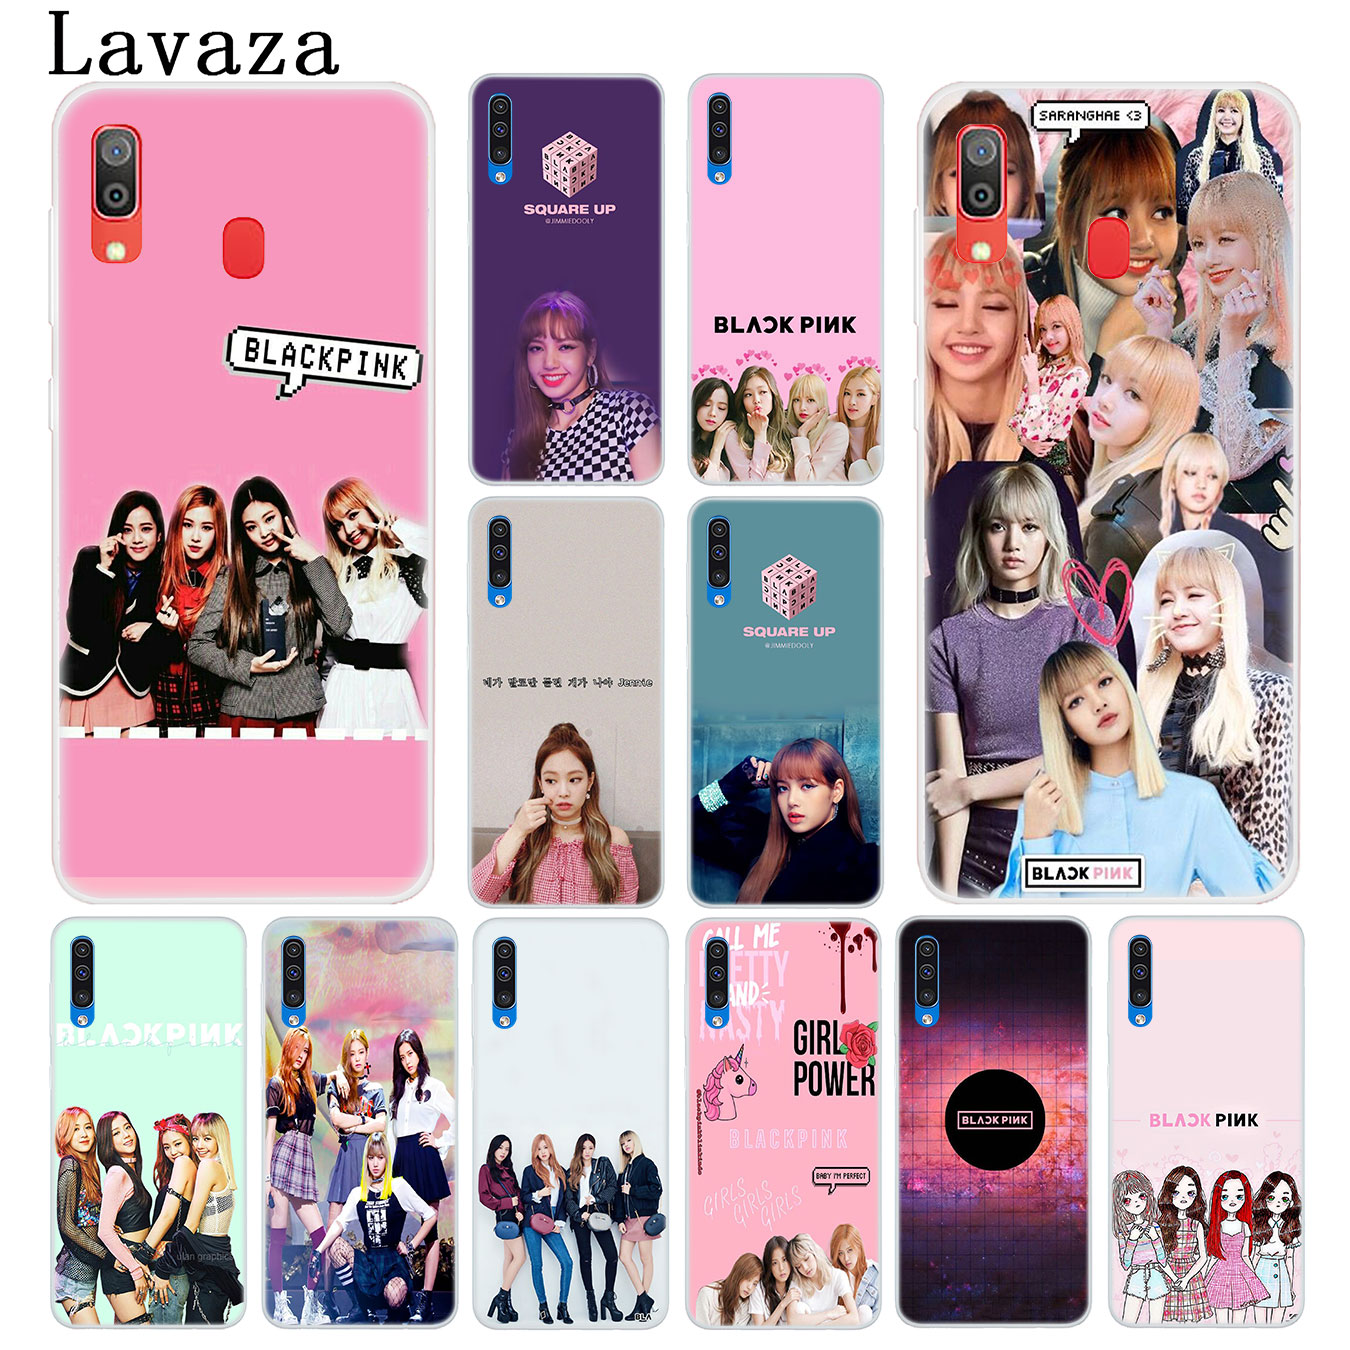 Lavaza Kpop Blackpink Black Pink Music Hard Transparent Phone Case For Samsung Galaxy M30 M20 M10 A10 A30 A40 A50 A70 Cover To Win A High Admiration And Is Widely Trusted At Home And Abroad. Half-wrapped Case